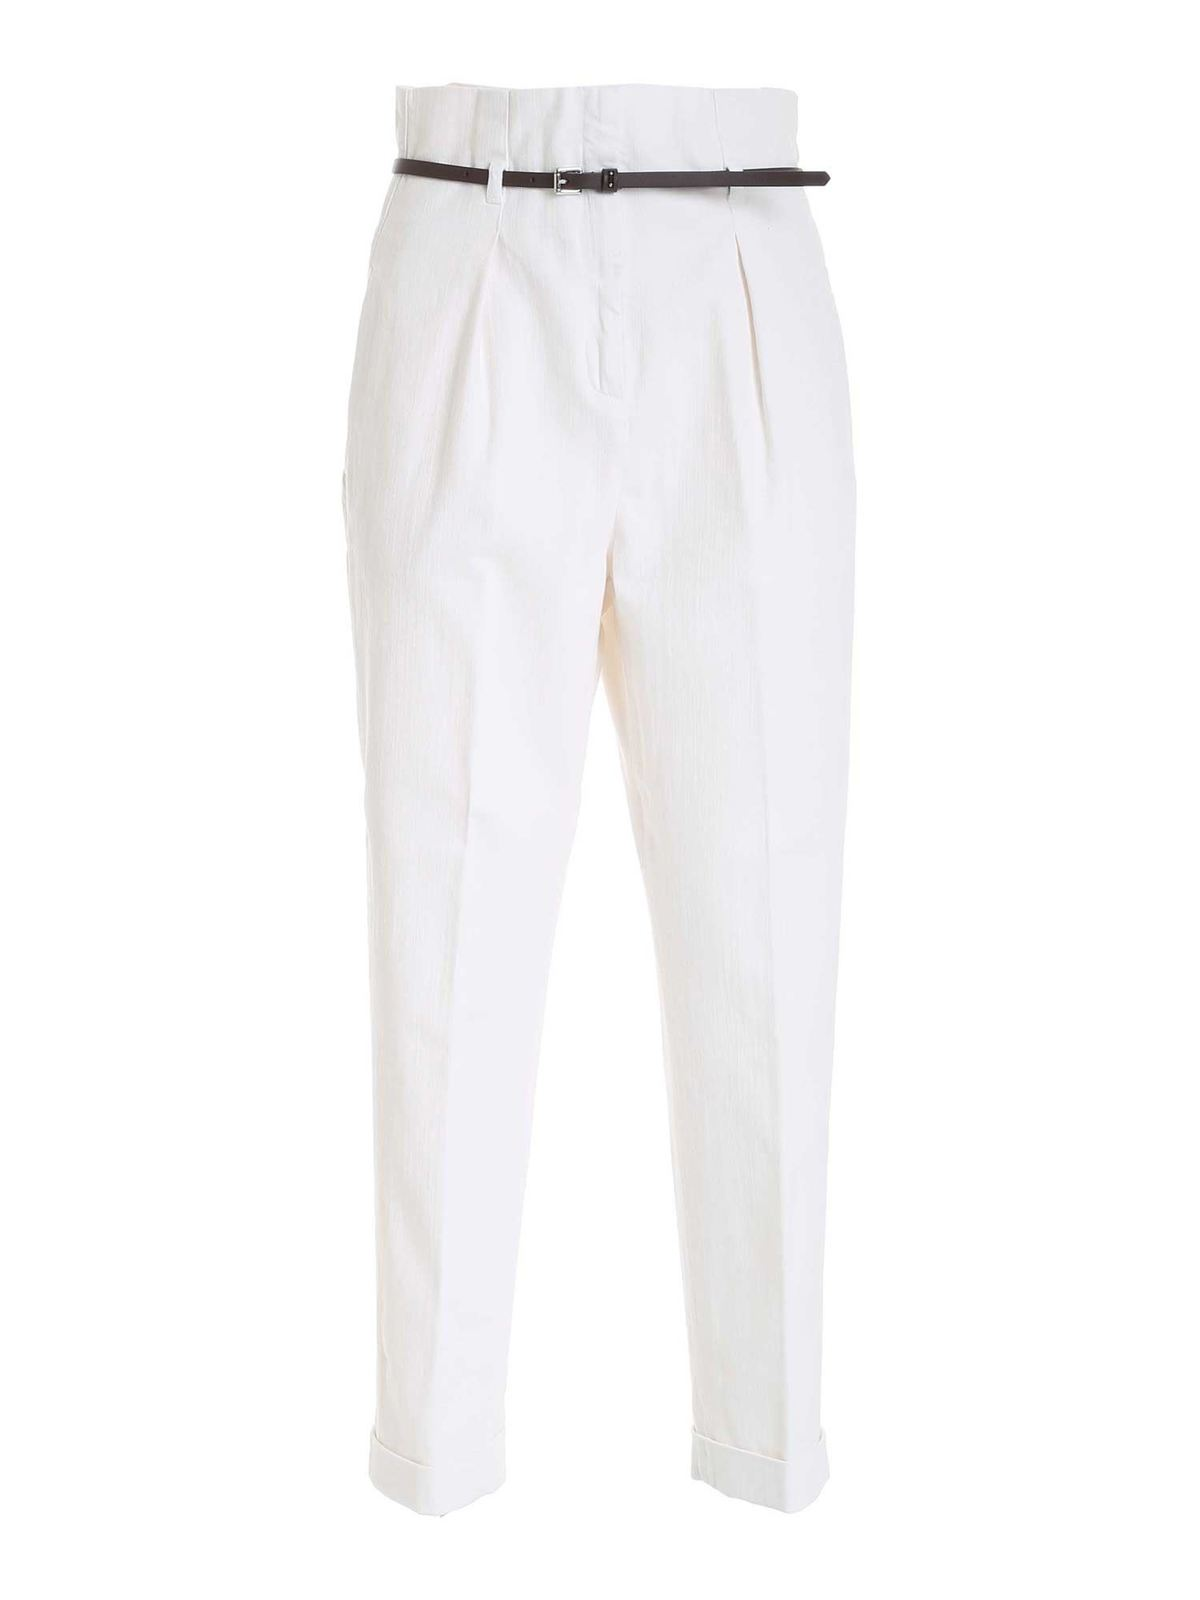 Peserico Belted Pants In White